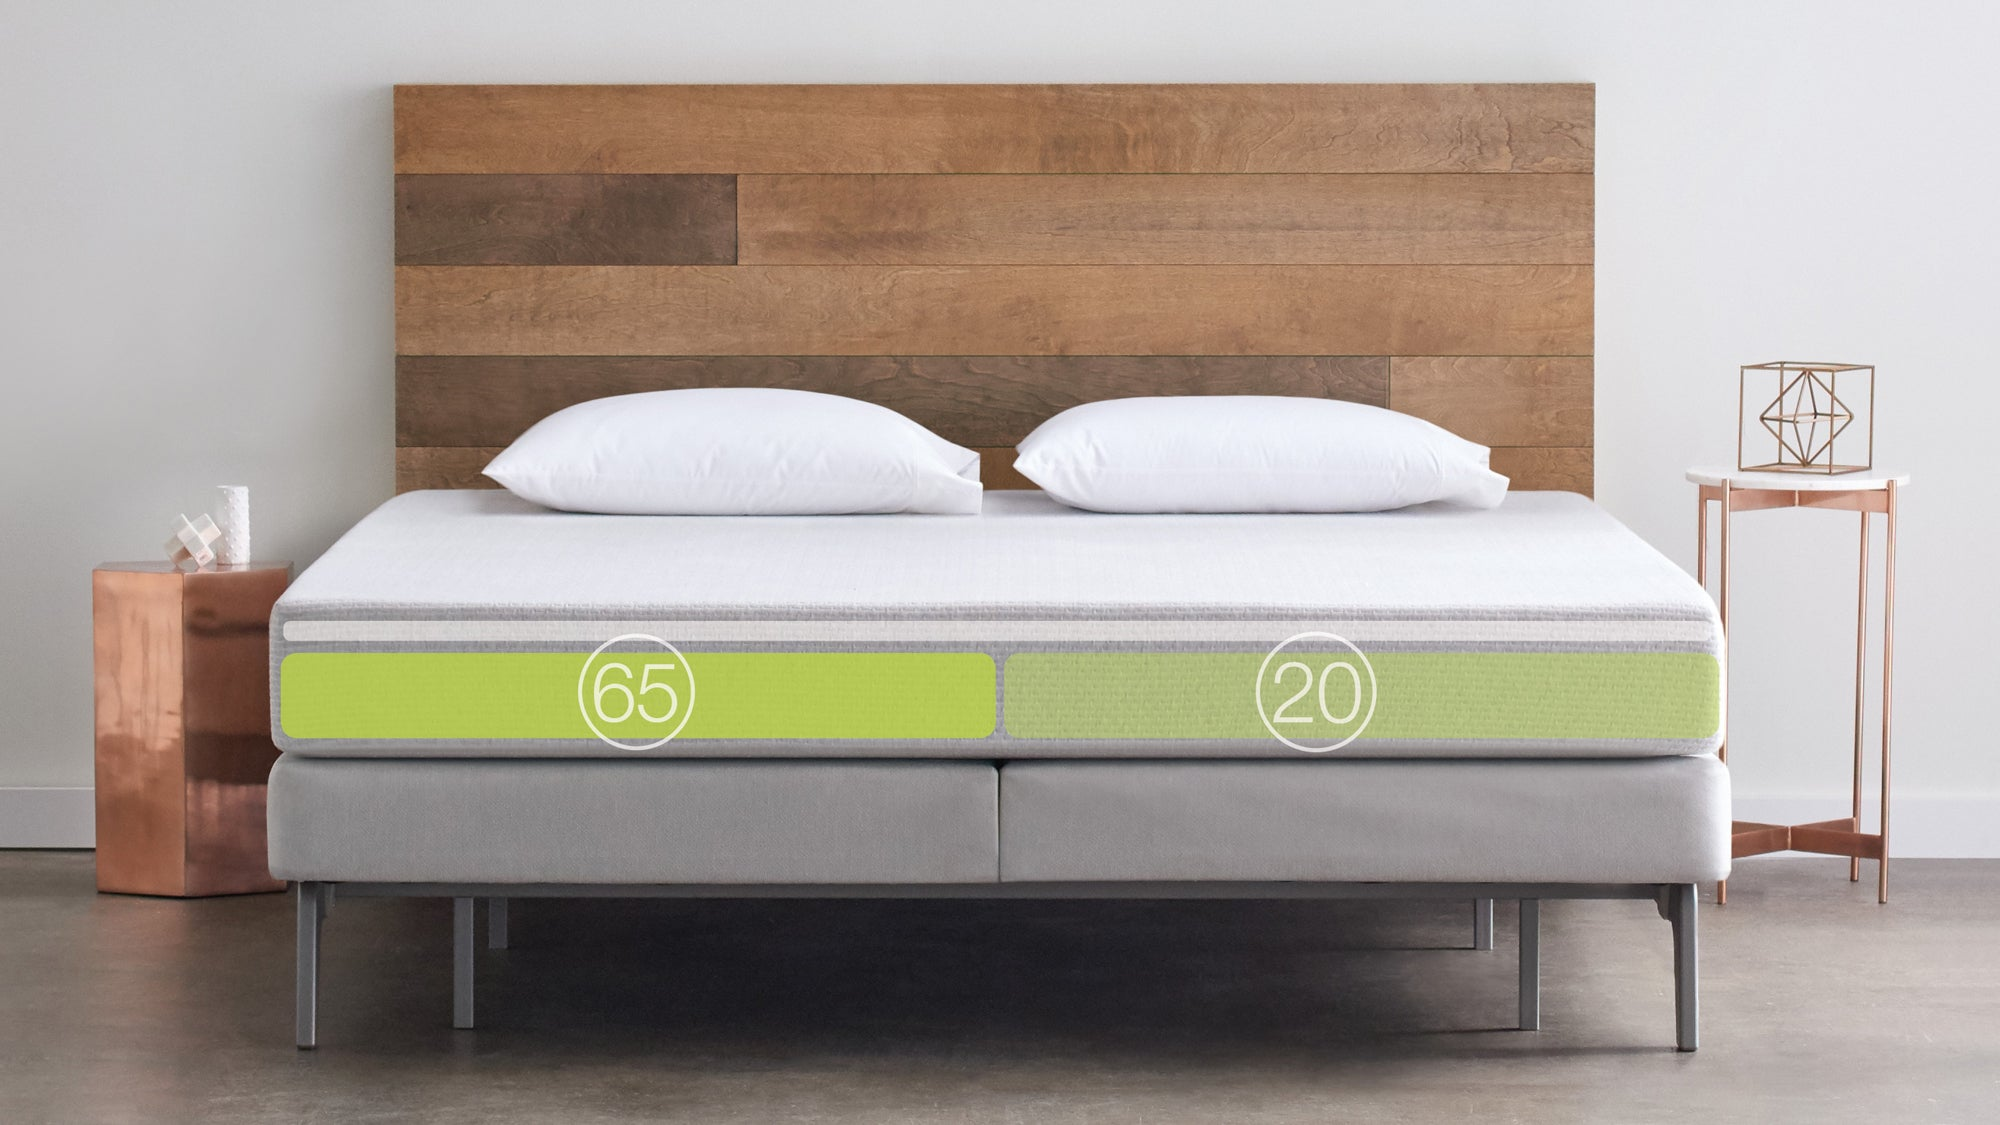 Sleep Number s New Adjustable Mattress Ships In A Tiny Box